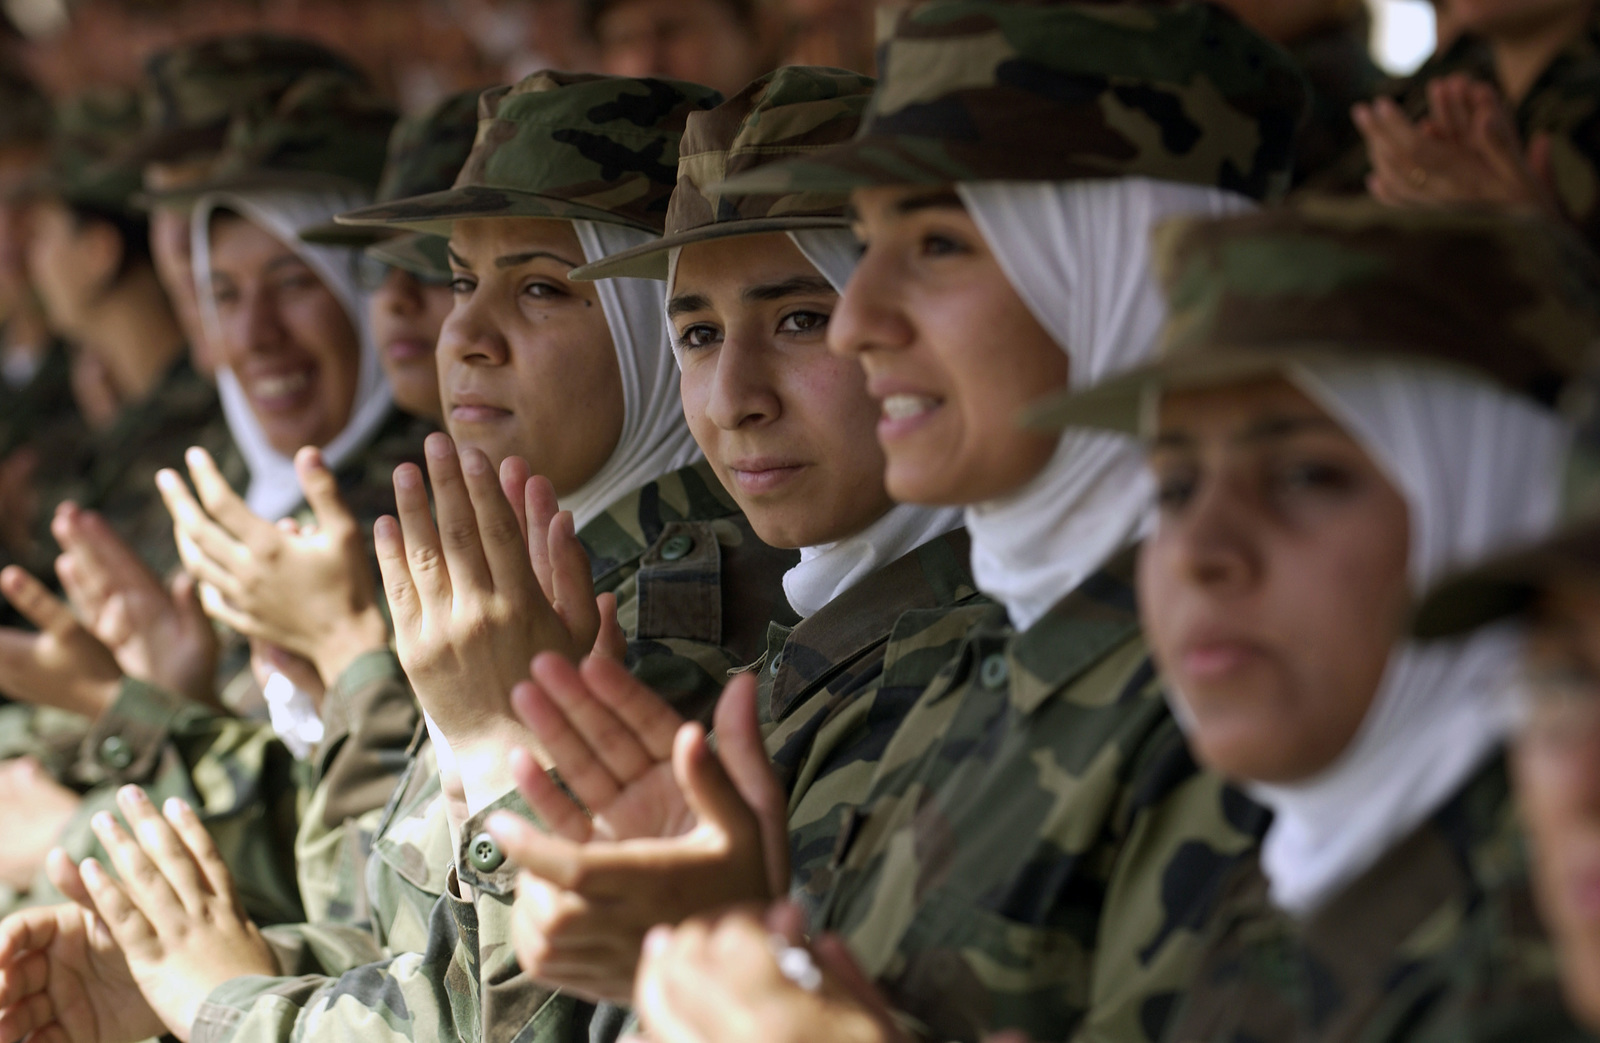 A squad of female Iraqi Soldiers attend graduation ceremonies for their male counterparts in Amman, Jordan (JOR), during Operation IRAQI FREEDOM